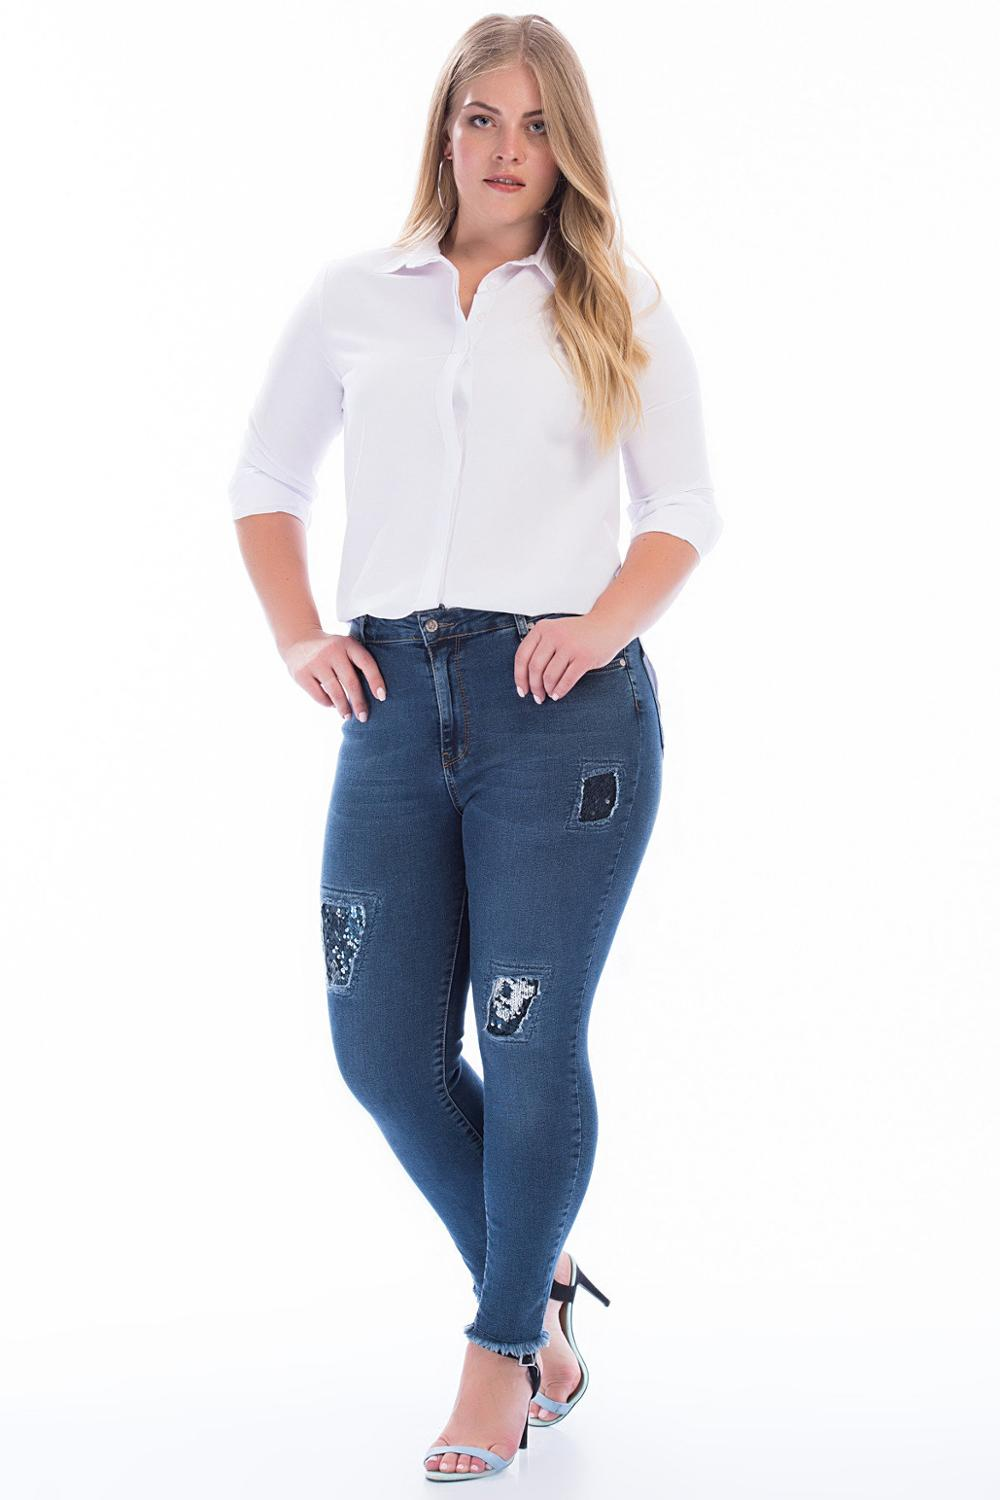 Women's Plus Size Sequins Detail Jeans Trousers Blue 49108